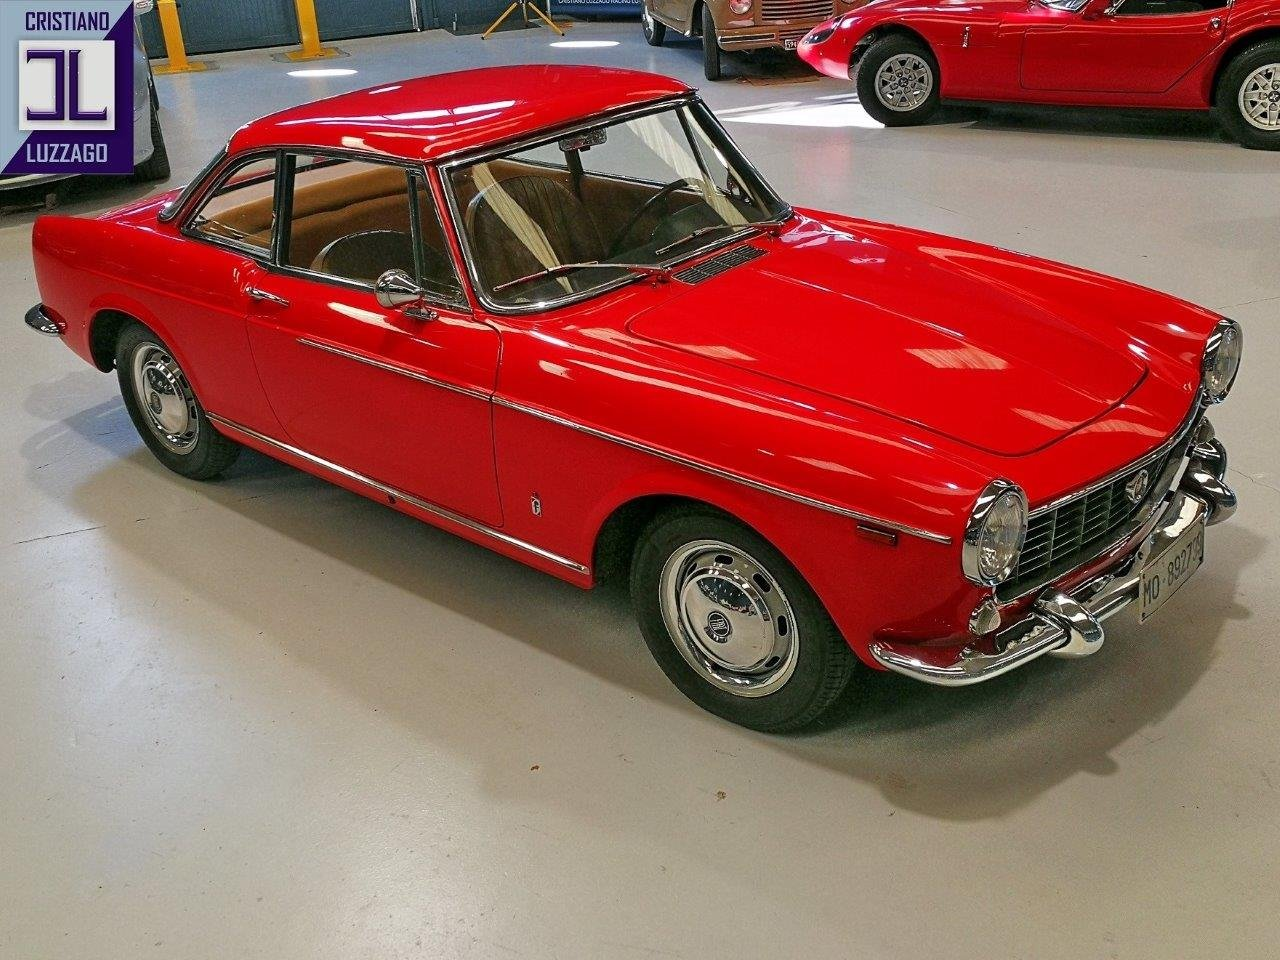 1966 FIAT 1500 COUPE' PININFARINA -3 OWNERS ONLY For Sale (picture 2 of 5)